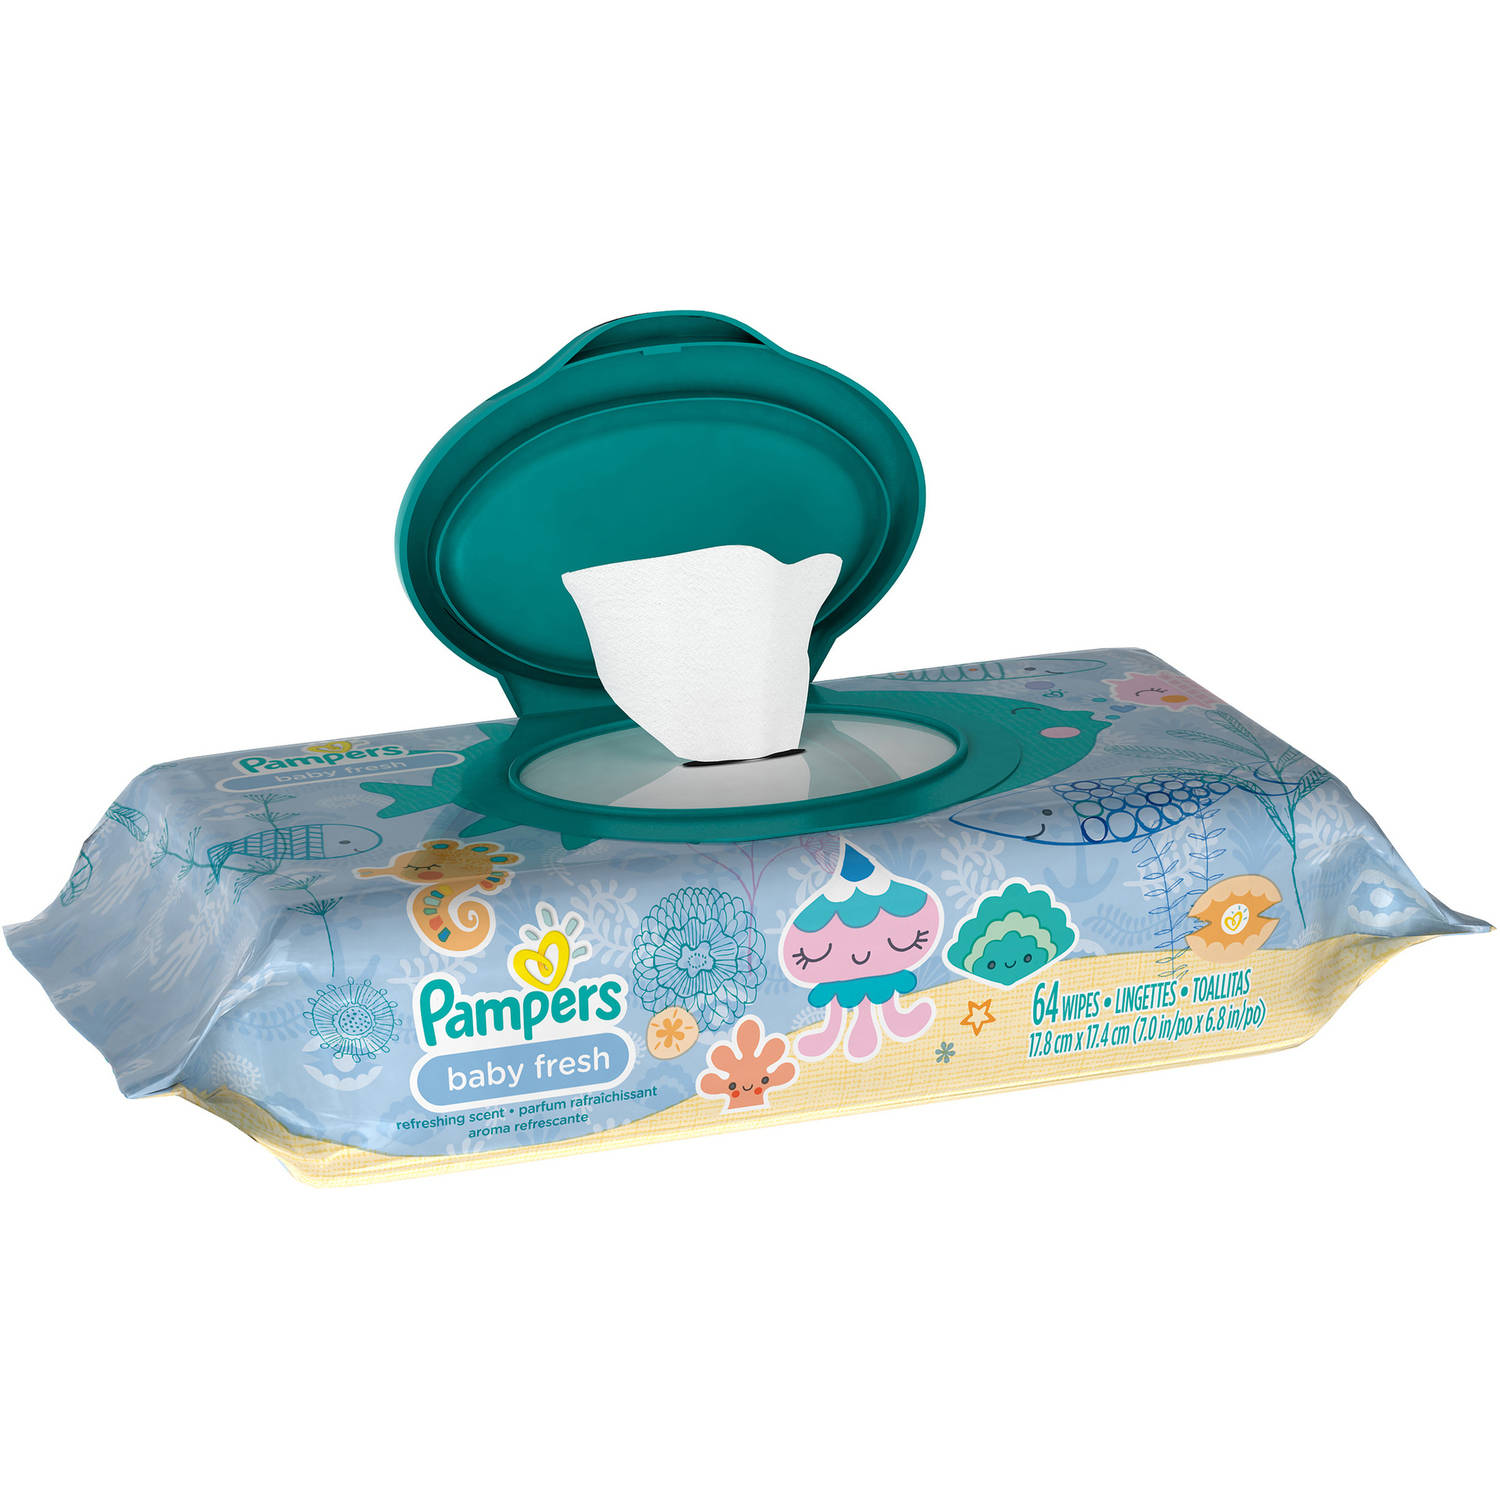 Pampers Baby Fresh Wipes, 64 Wipes